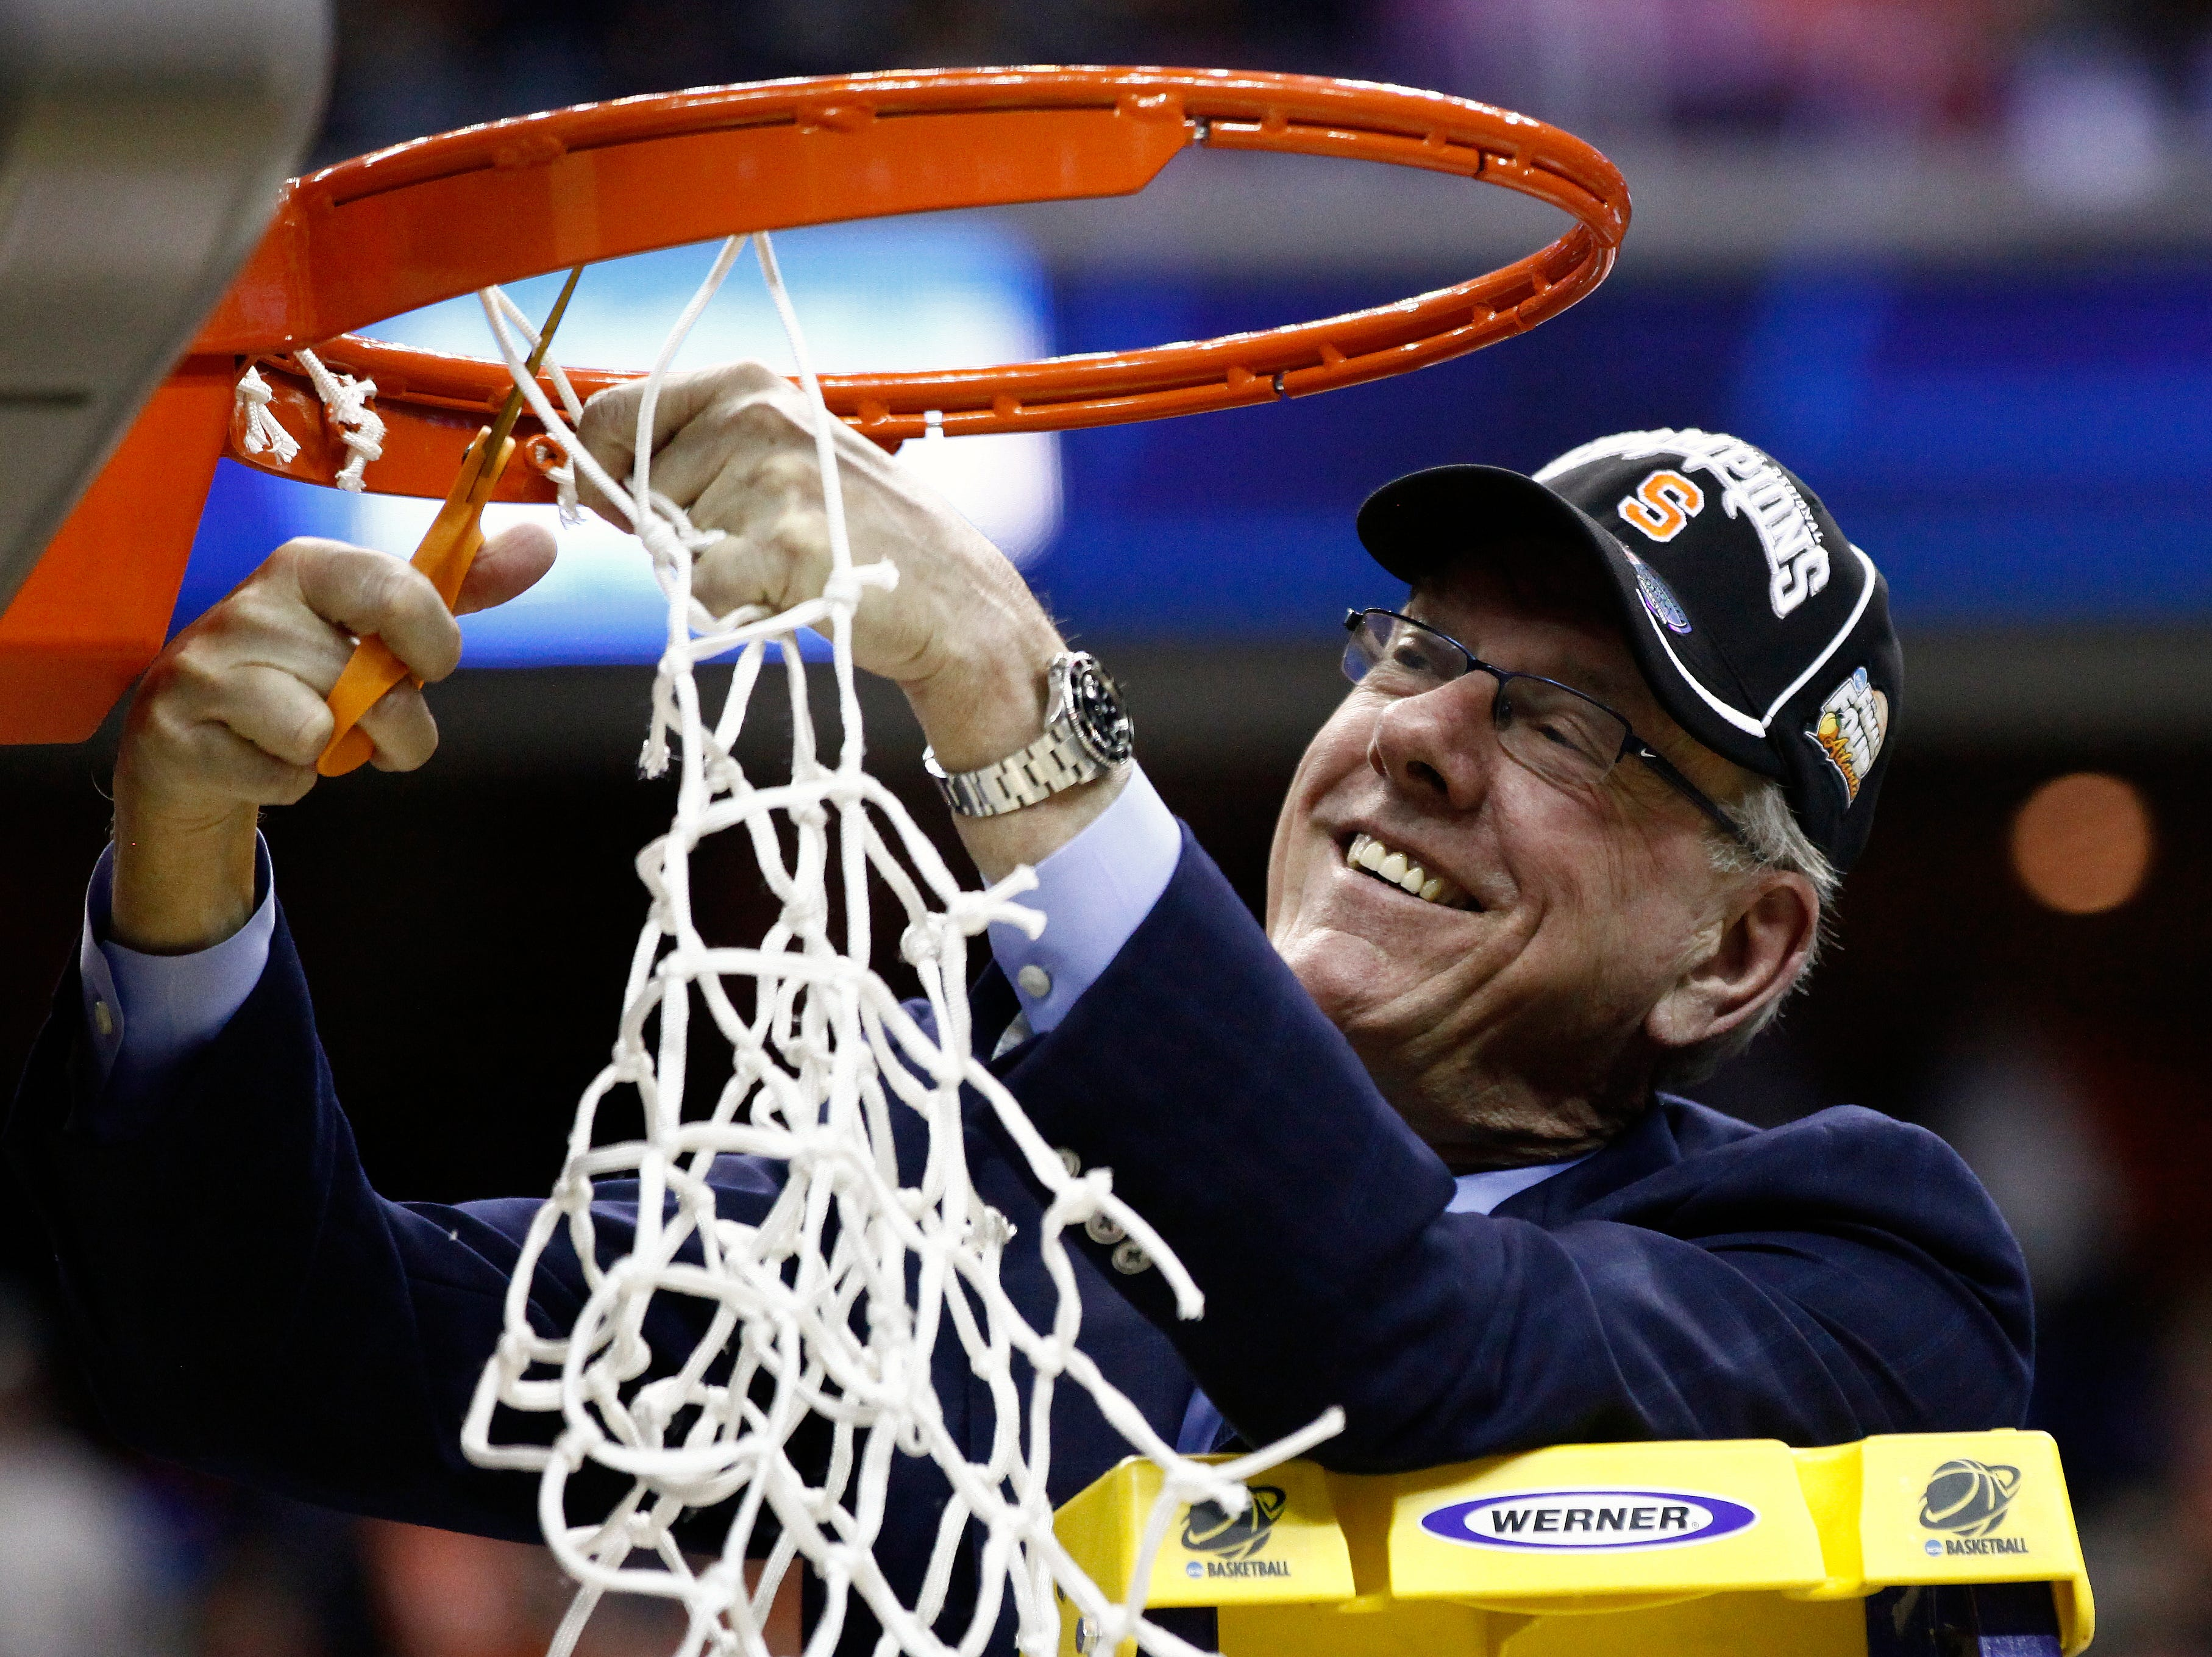 2013: Syracuse head coach Jim Boeheim cuts down the net sfterthe East Regional final in the NCAA men's college basketball tournament, Saturday, March 30, 2013 in Washington. Syracuse defeated Marquette 55-39 to advance to the Final Four in Atlanta. (AP Photo/Mark Tenally)